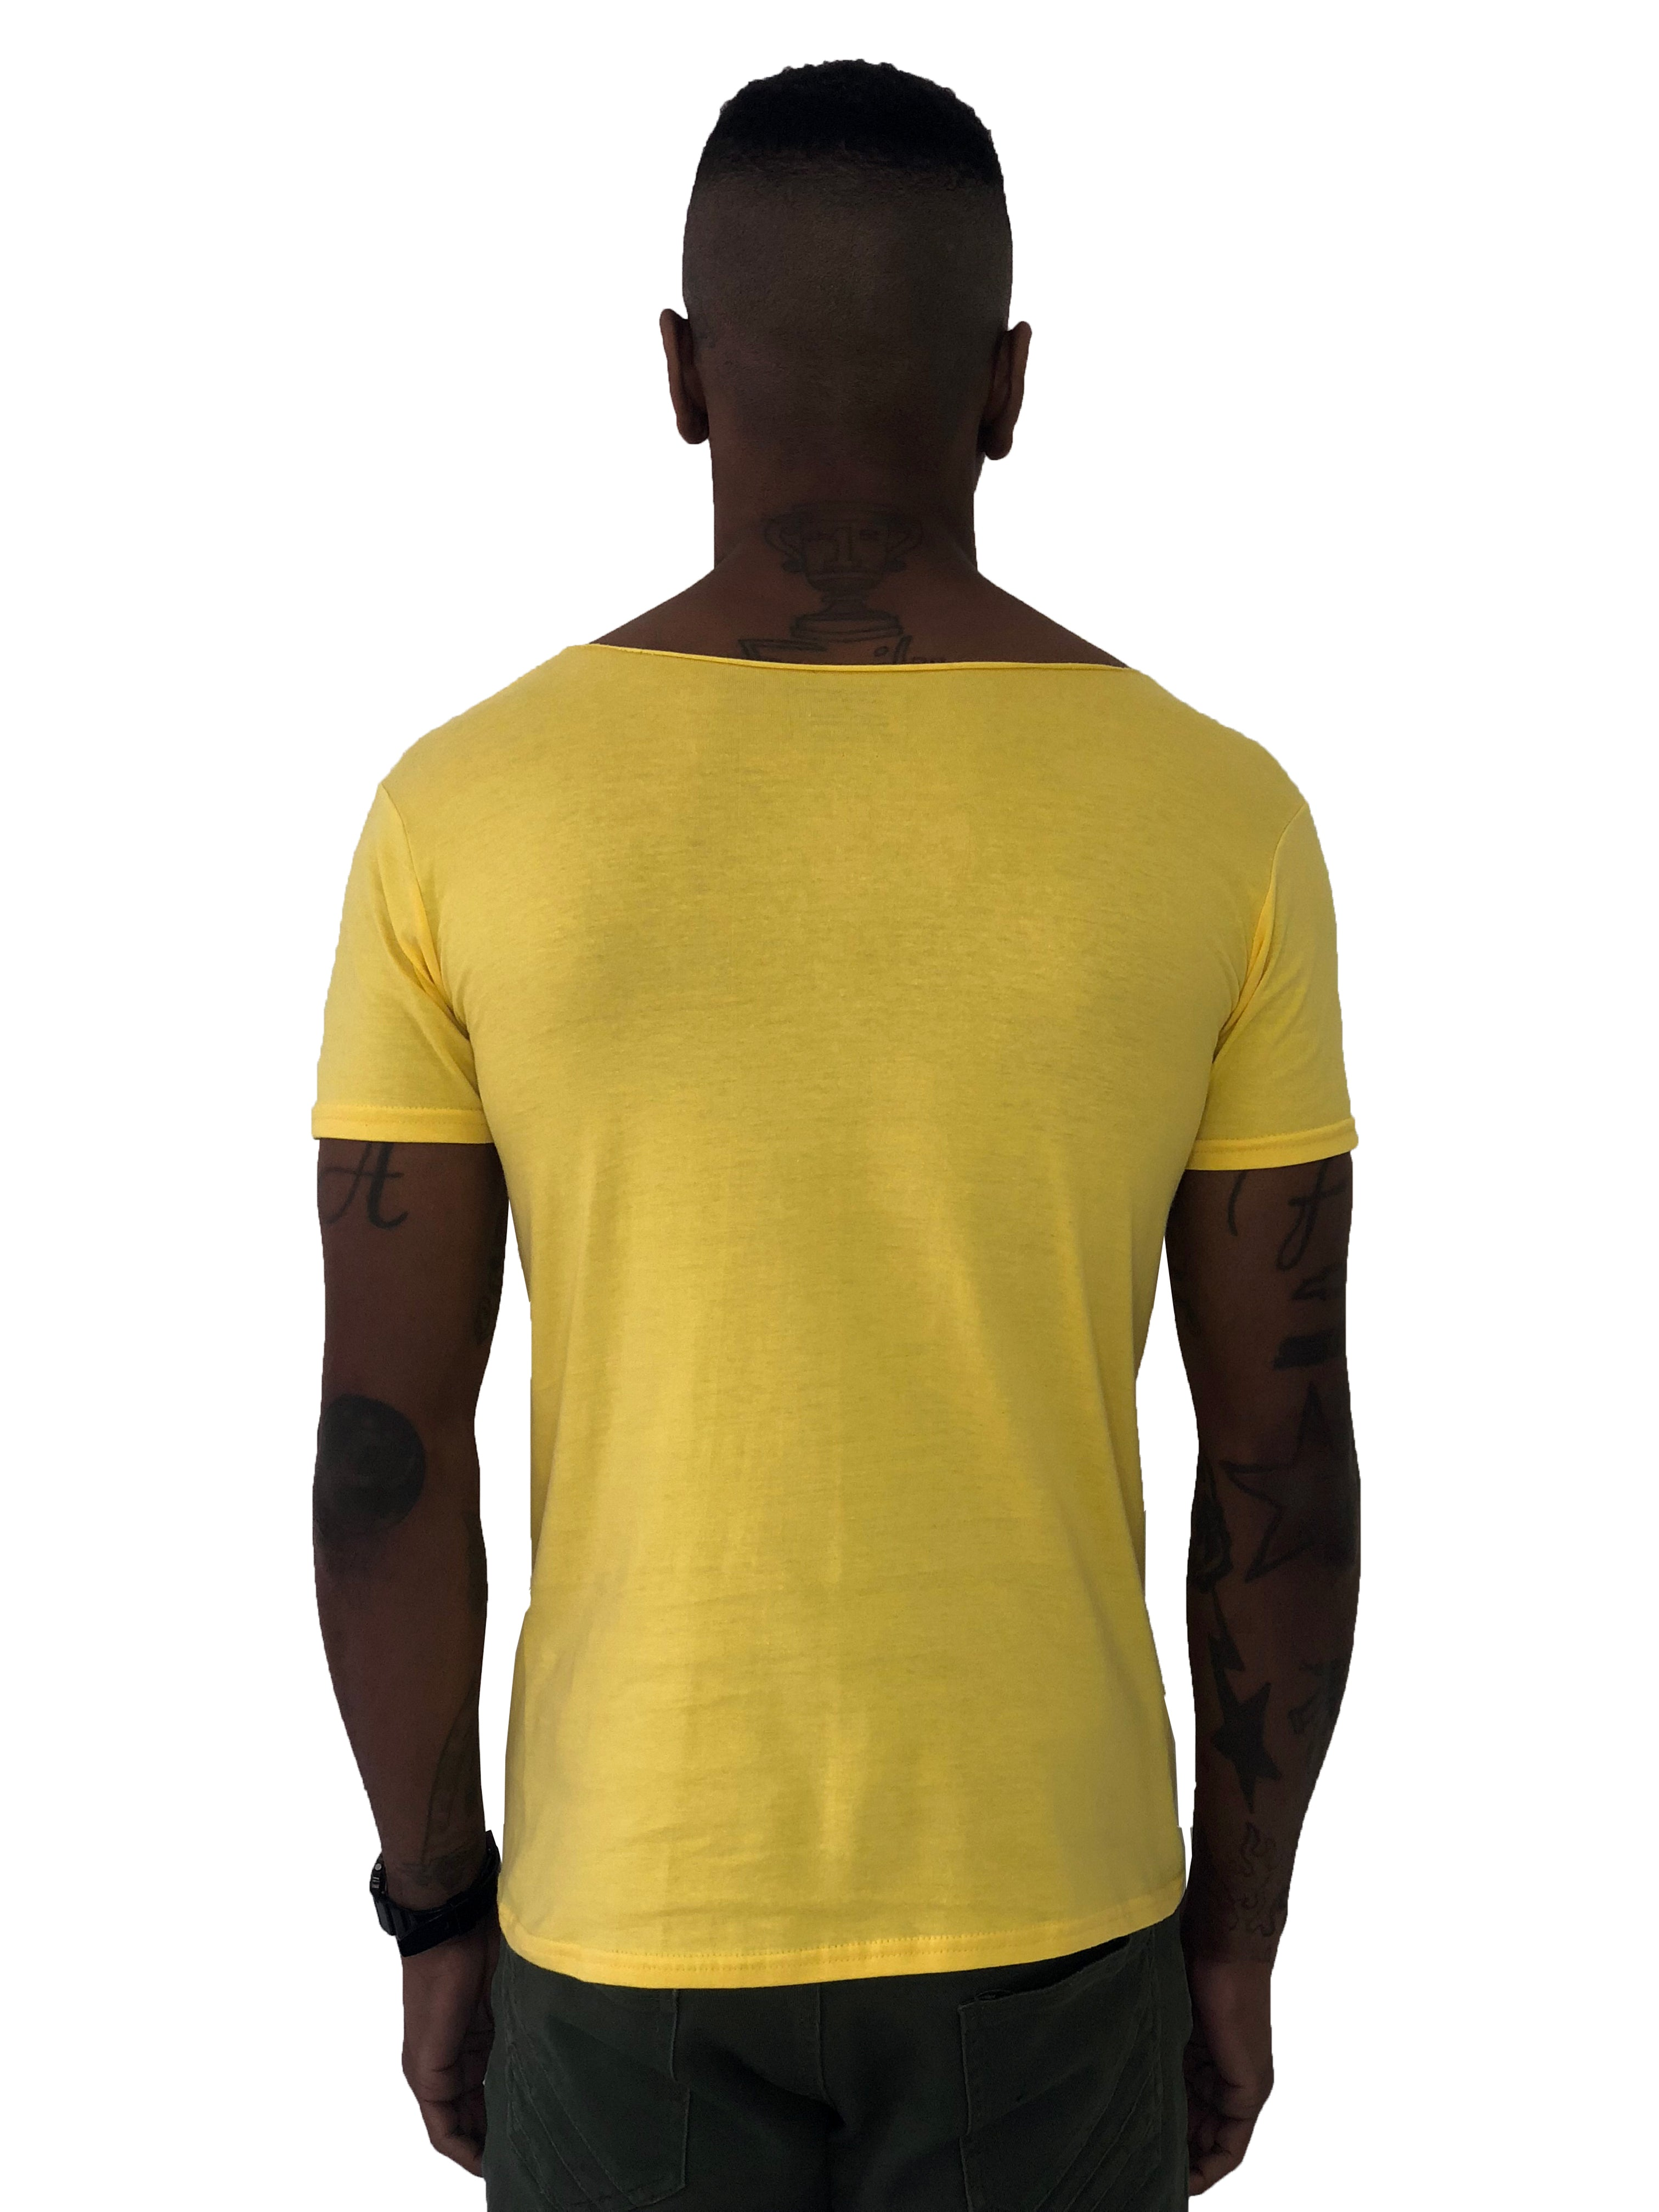 "Men T-Shirt Muscle ""Pinup"" Light Yellow  by iacobuccyounes Italy - Brit Boss"